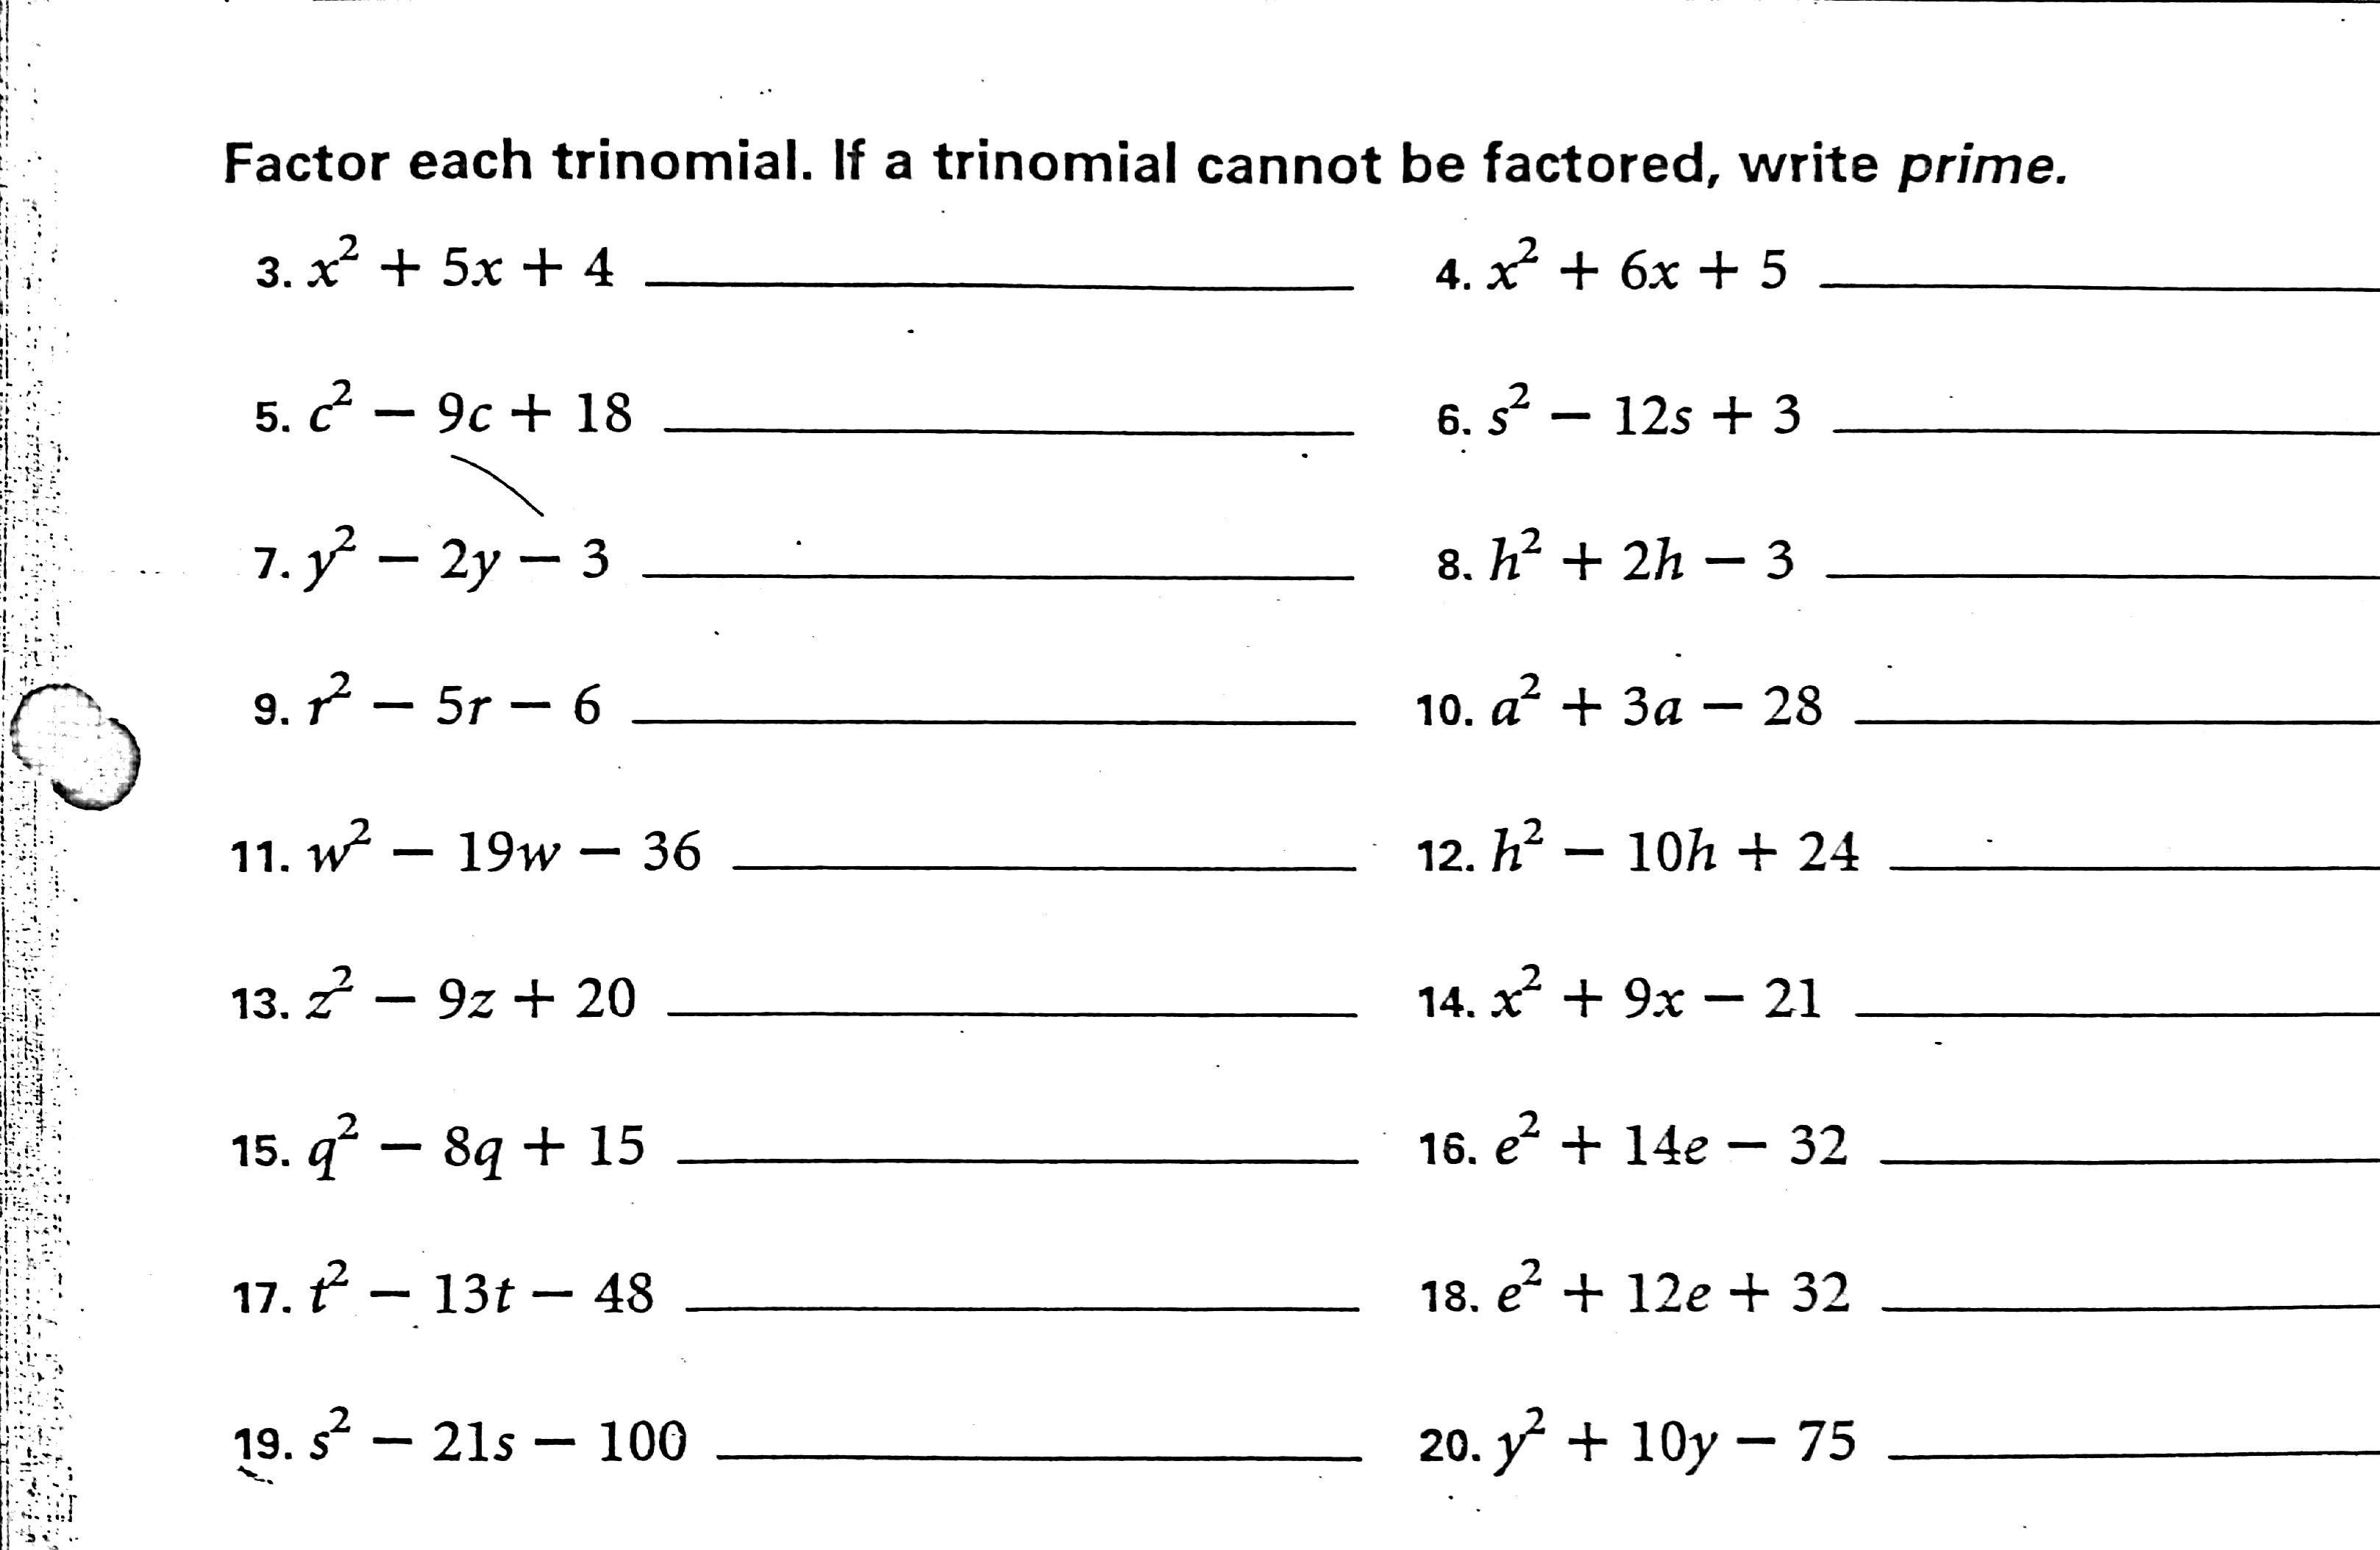 Proatmealus  Remarkable Factoring Worksheet  Delwfgcom With Great Factoring Polynomials Practice Worksheet With Answers Coterraneo With Divine Multiplication X Worksheets Also Probability Practice Worksheet In Addition Put Sentences In Correct Order Worksheets And Three Letter Consonant Blends Worksheets As Well As Weather Worksheets For Grade  Additionally Complex Sentences Worksheets From Delwfgcom With Proatmealus  Great Factoring Worksheet  Delwfgcom With Divine Factoring Polynomials Practice Worksheet With Answers Coterraneo And Remarkable Multiplication X Worksheets Also Probability Practice Worksheet In Addition Put Sentences In Correct Order Worksheets From Delwfgcom